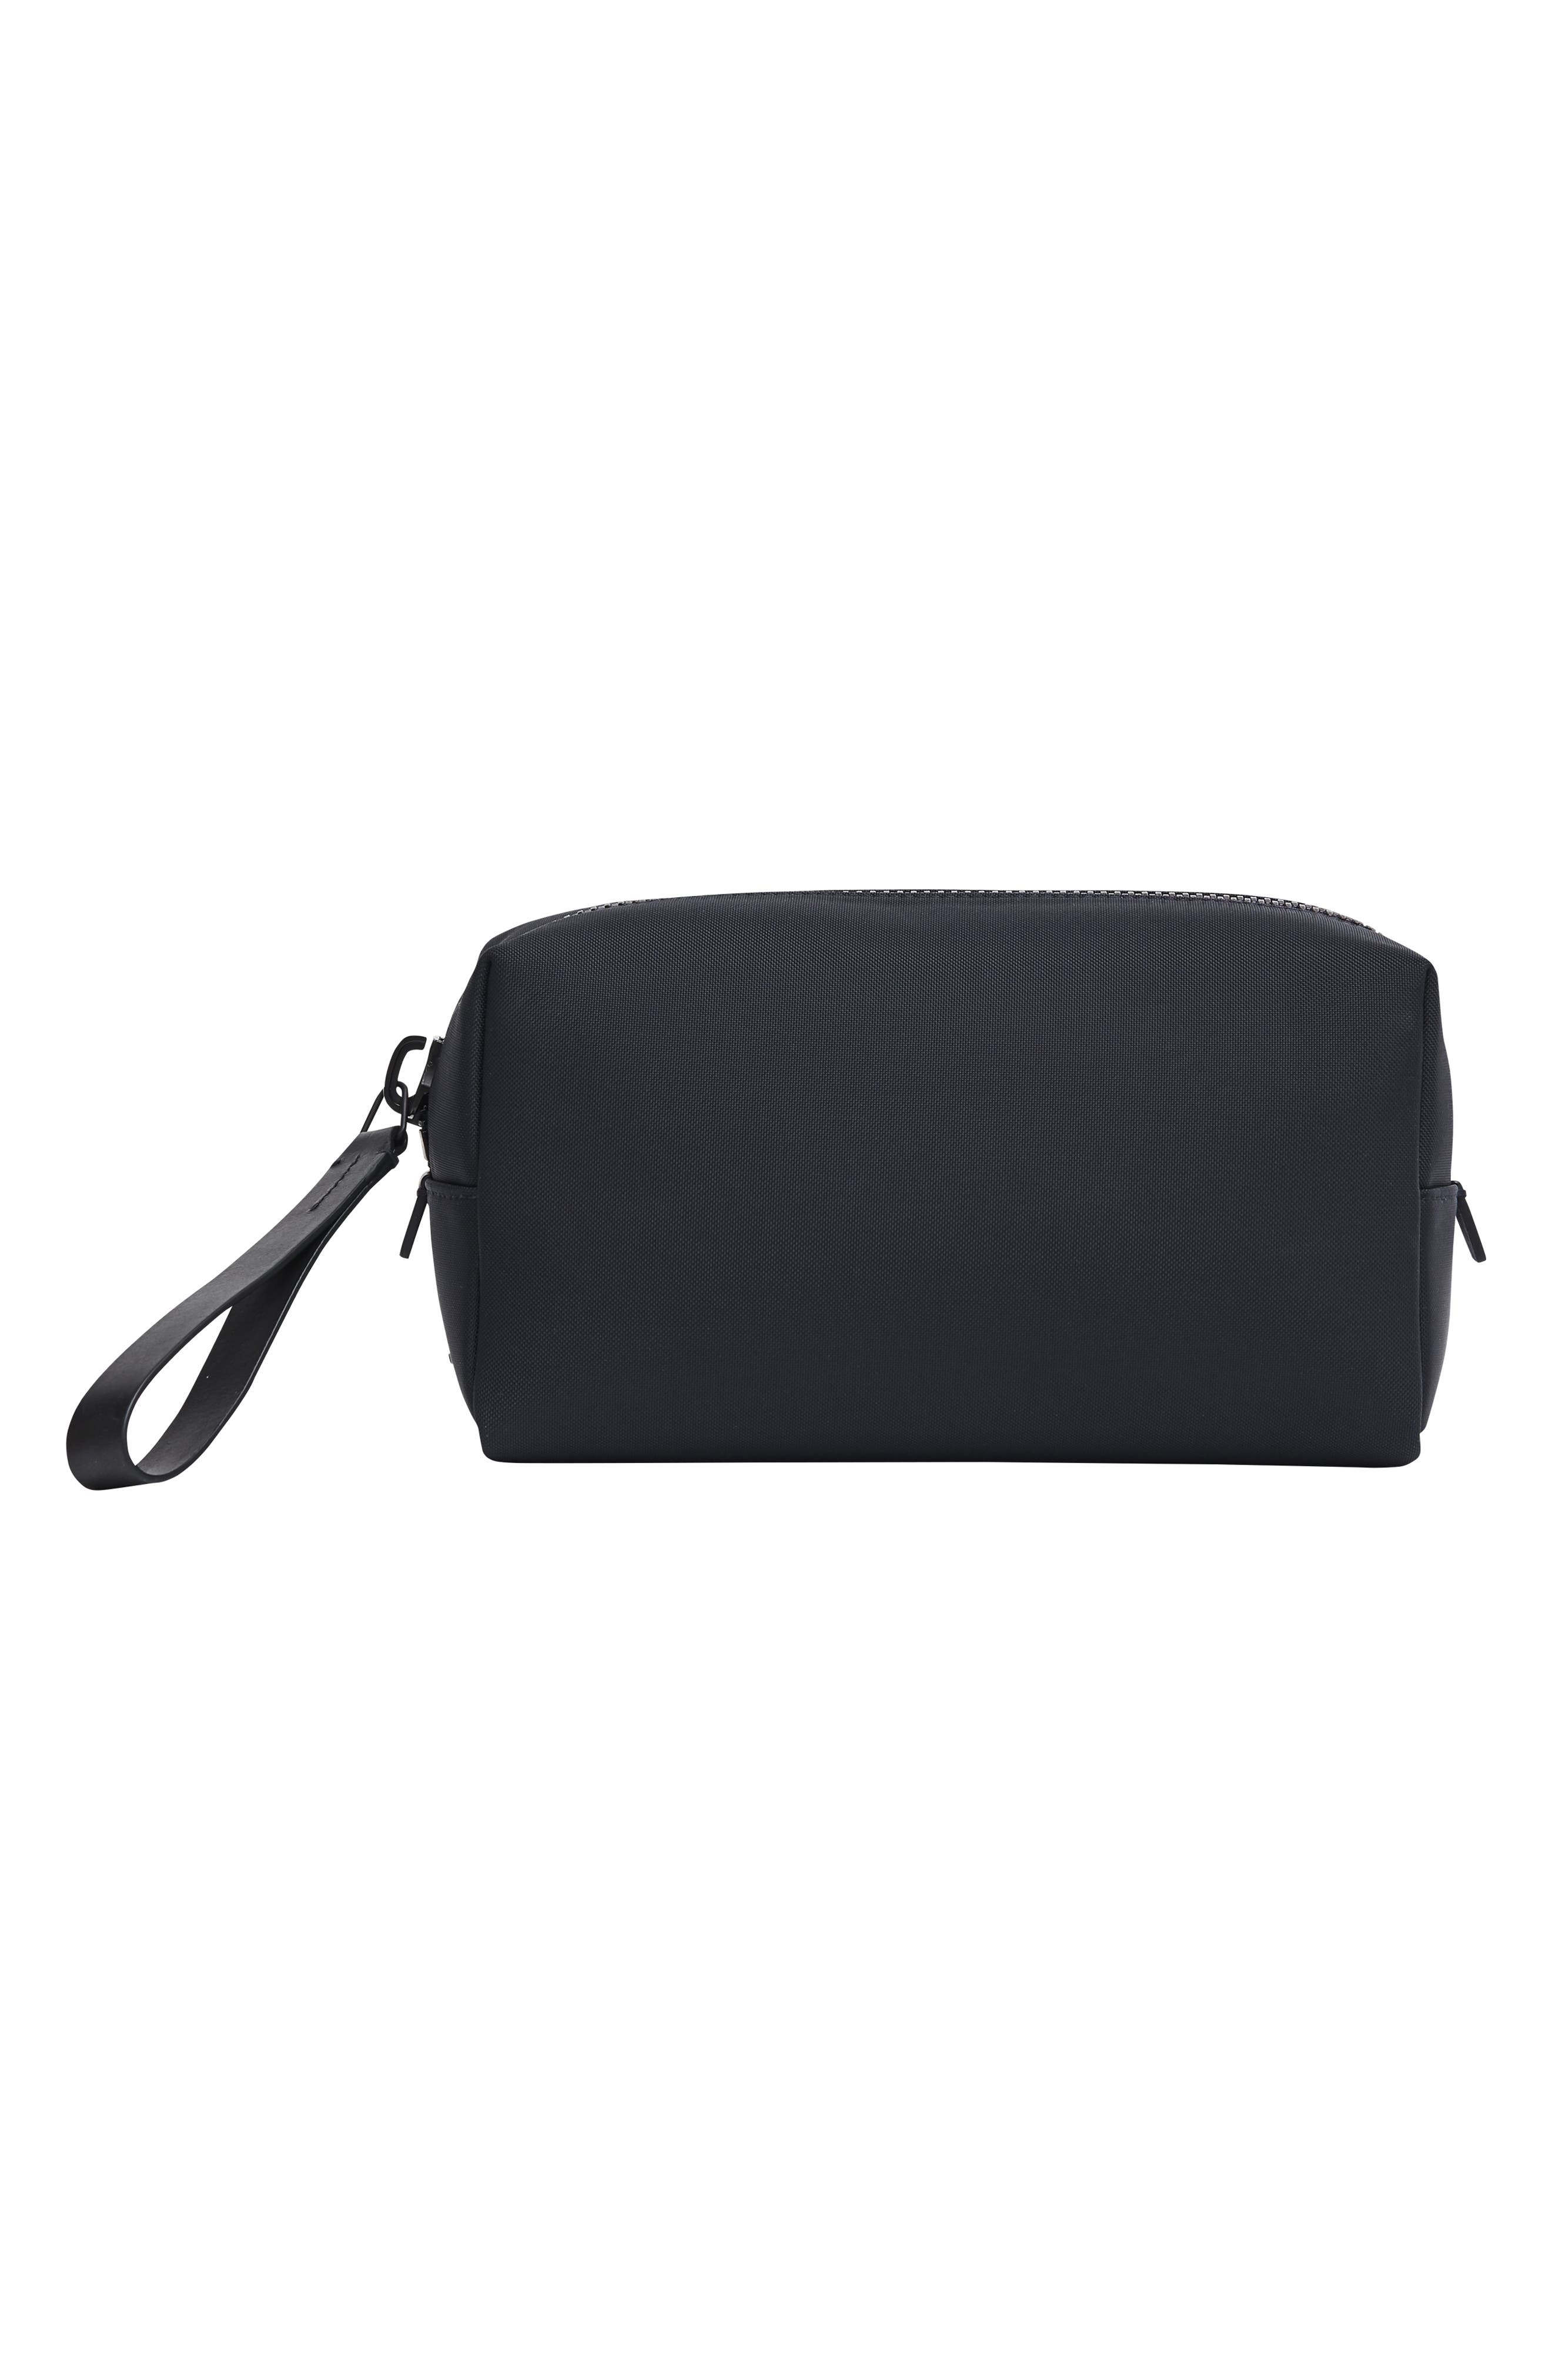 Nylon Dopp Kit,                             Alternate thumbnail 9, color,                             BLACK NYLON/ BLACK LEATHER